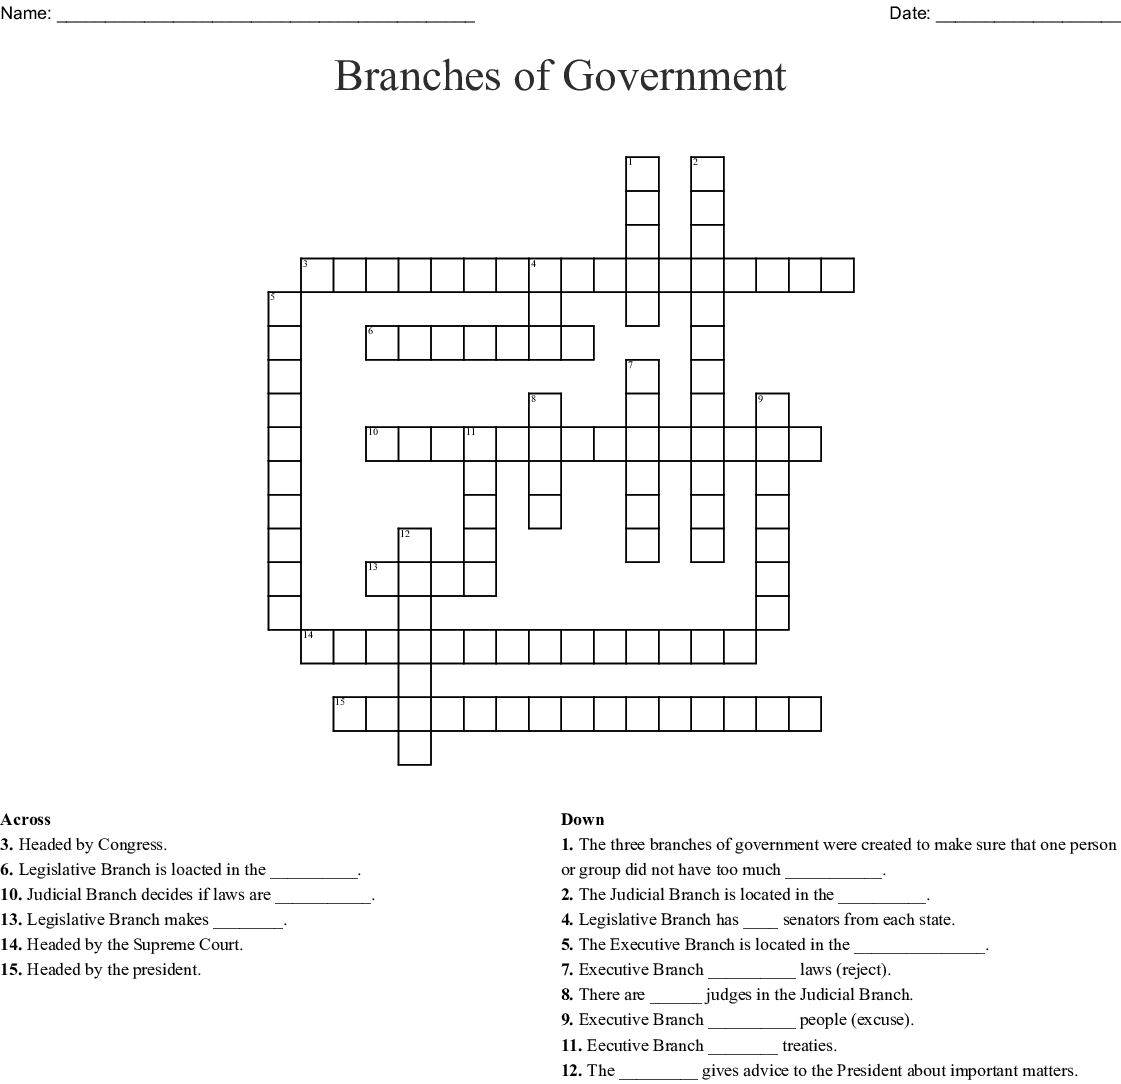 Principles Of The Constitution Worksheet Answers